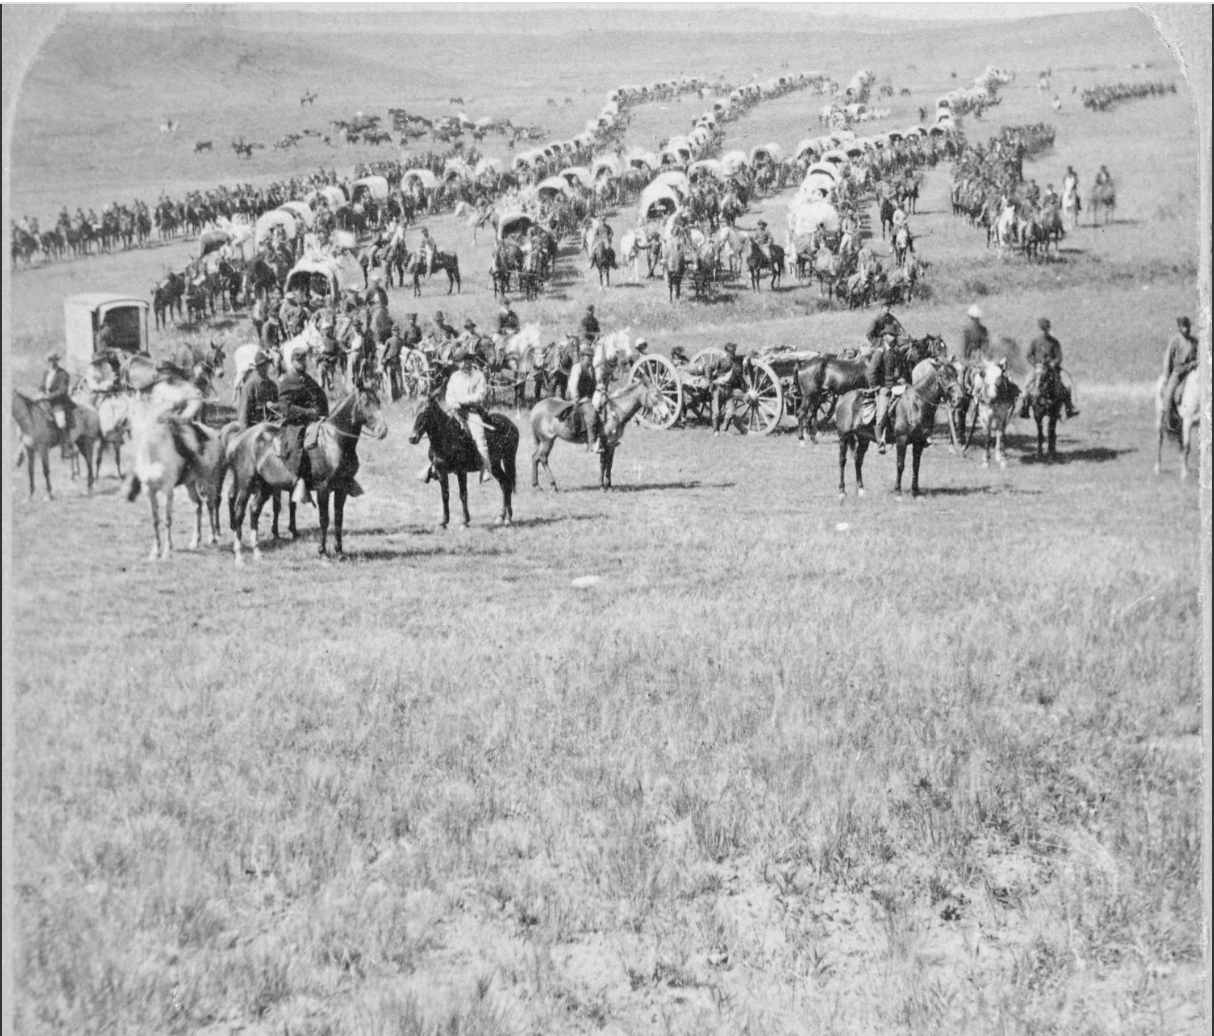 The Impact of Westward Expansion on Native American Communities